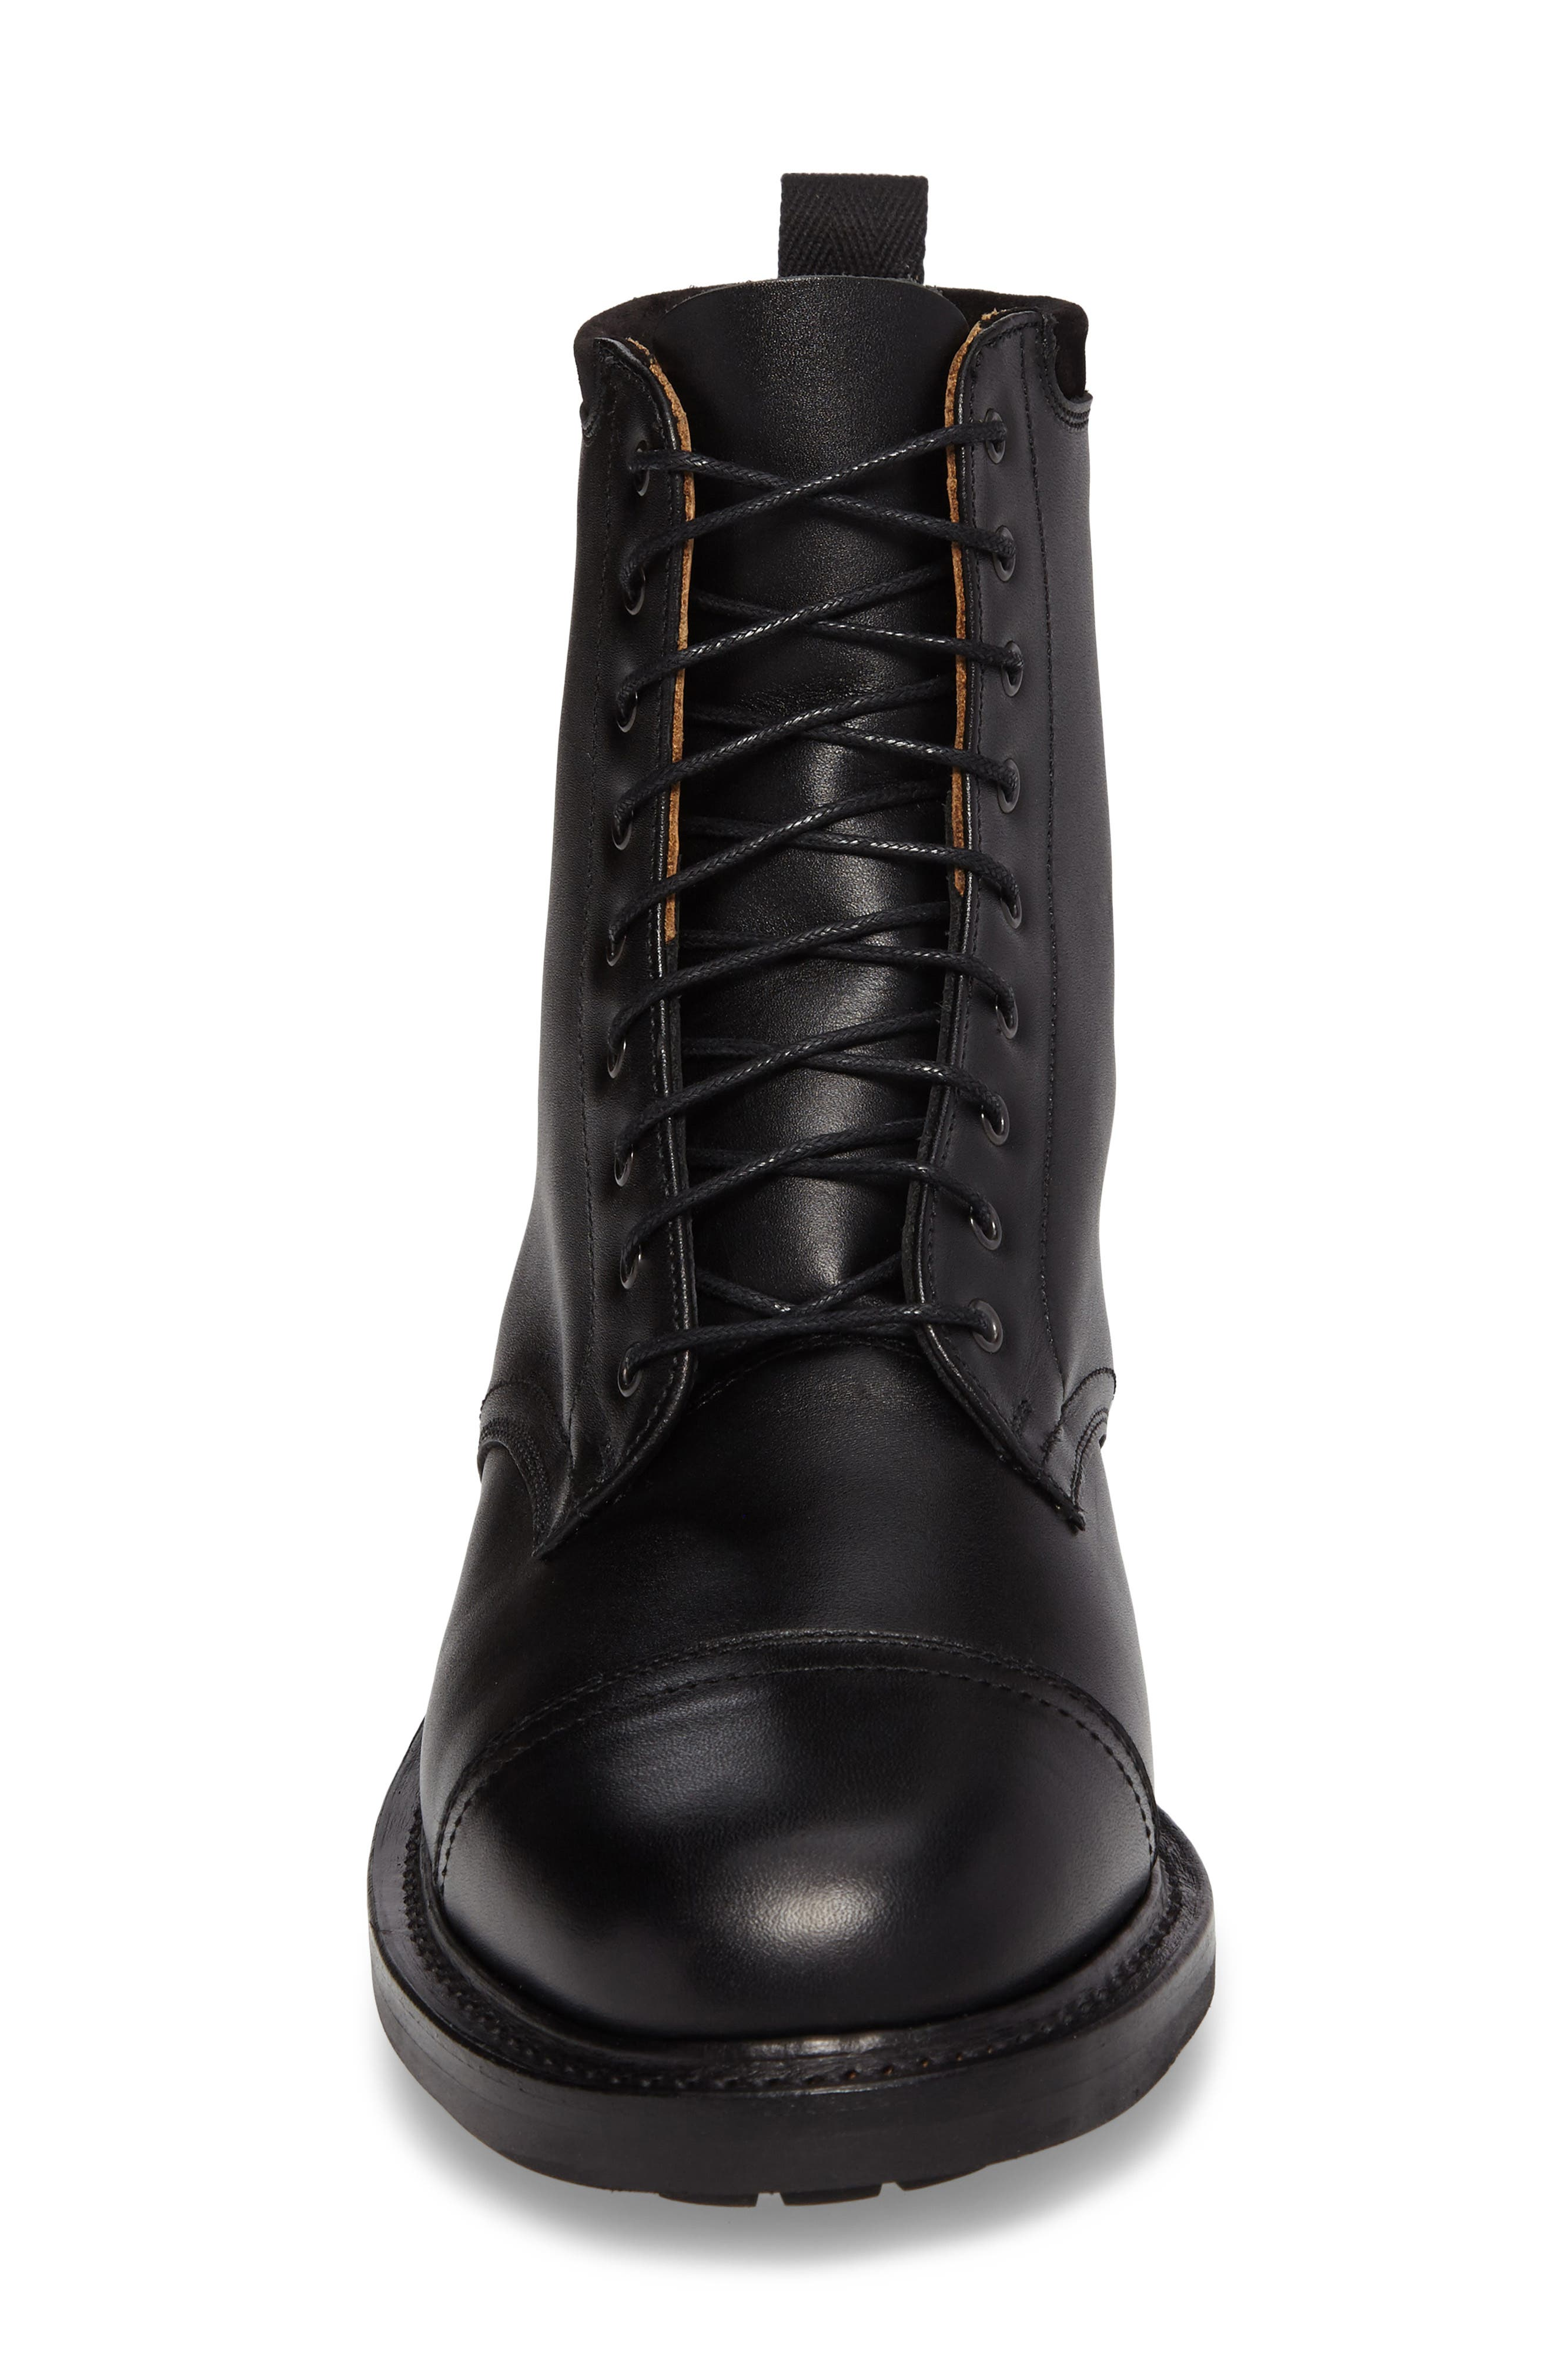 CLARKS<SUP>®</SUP>,                             Clarks Craftsmaster III Cap Toe Boot,                             Alternate thumbnail 4, color,                             BLACK LEATHER